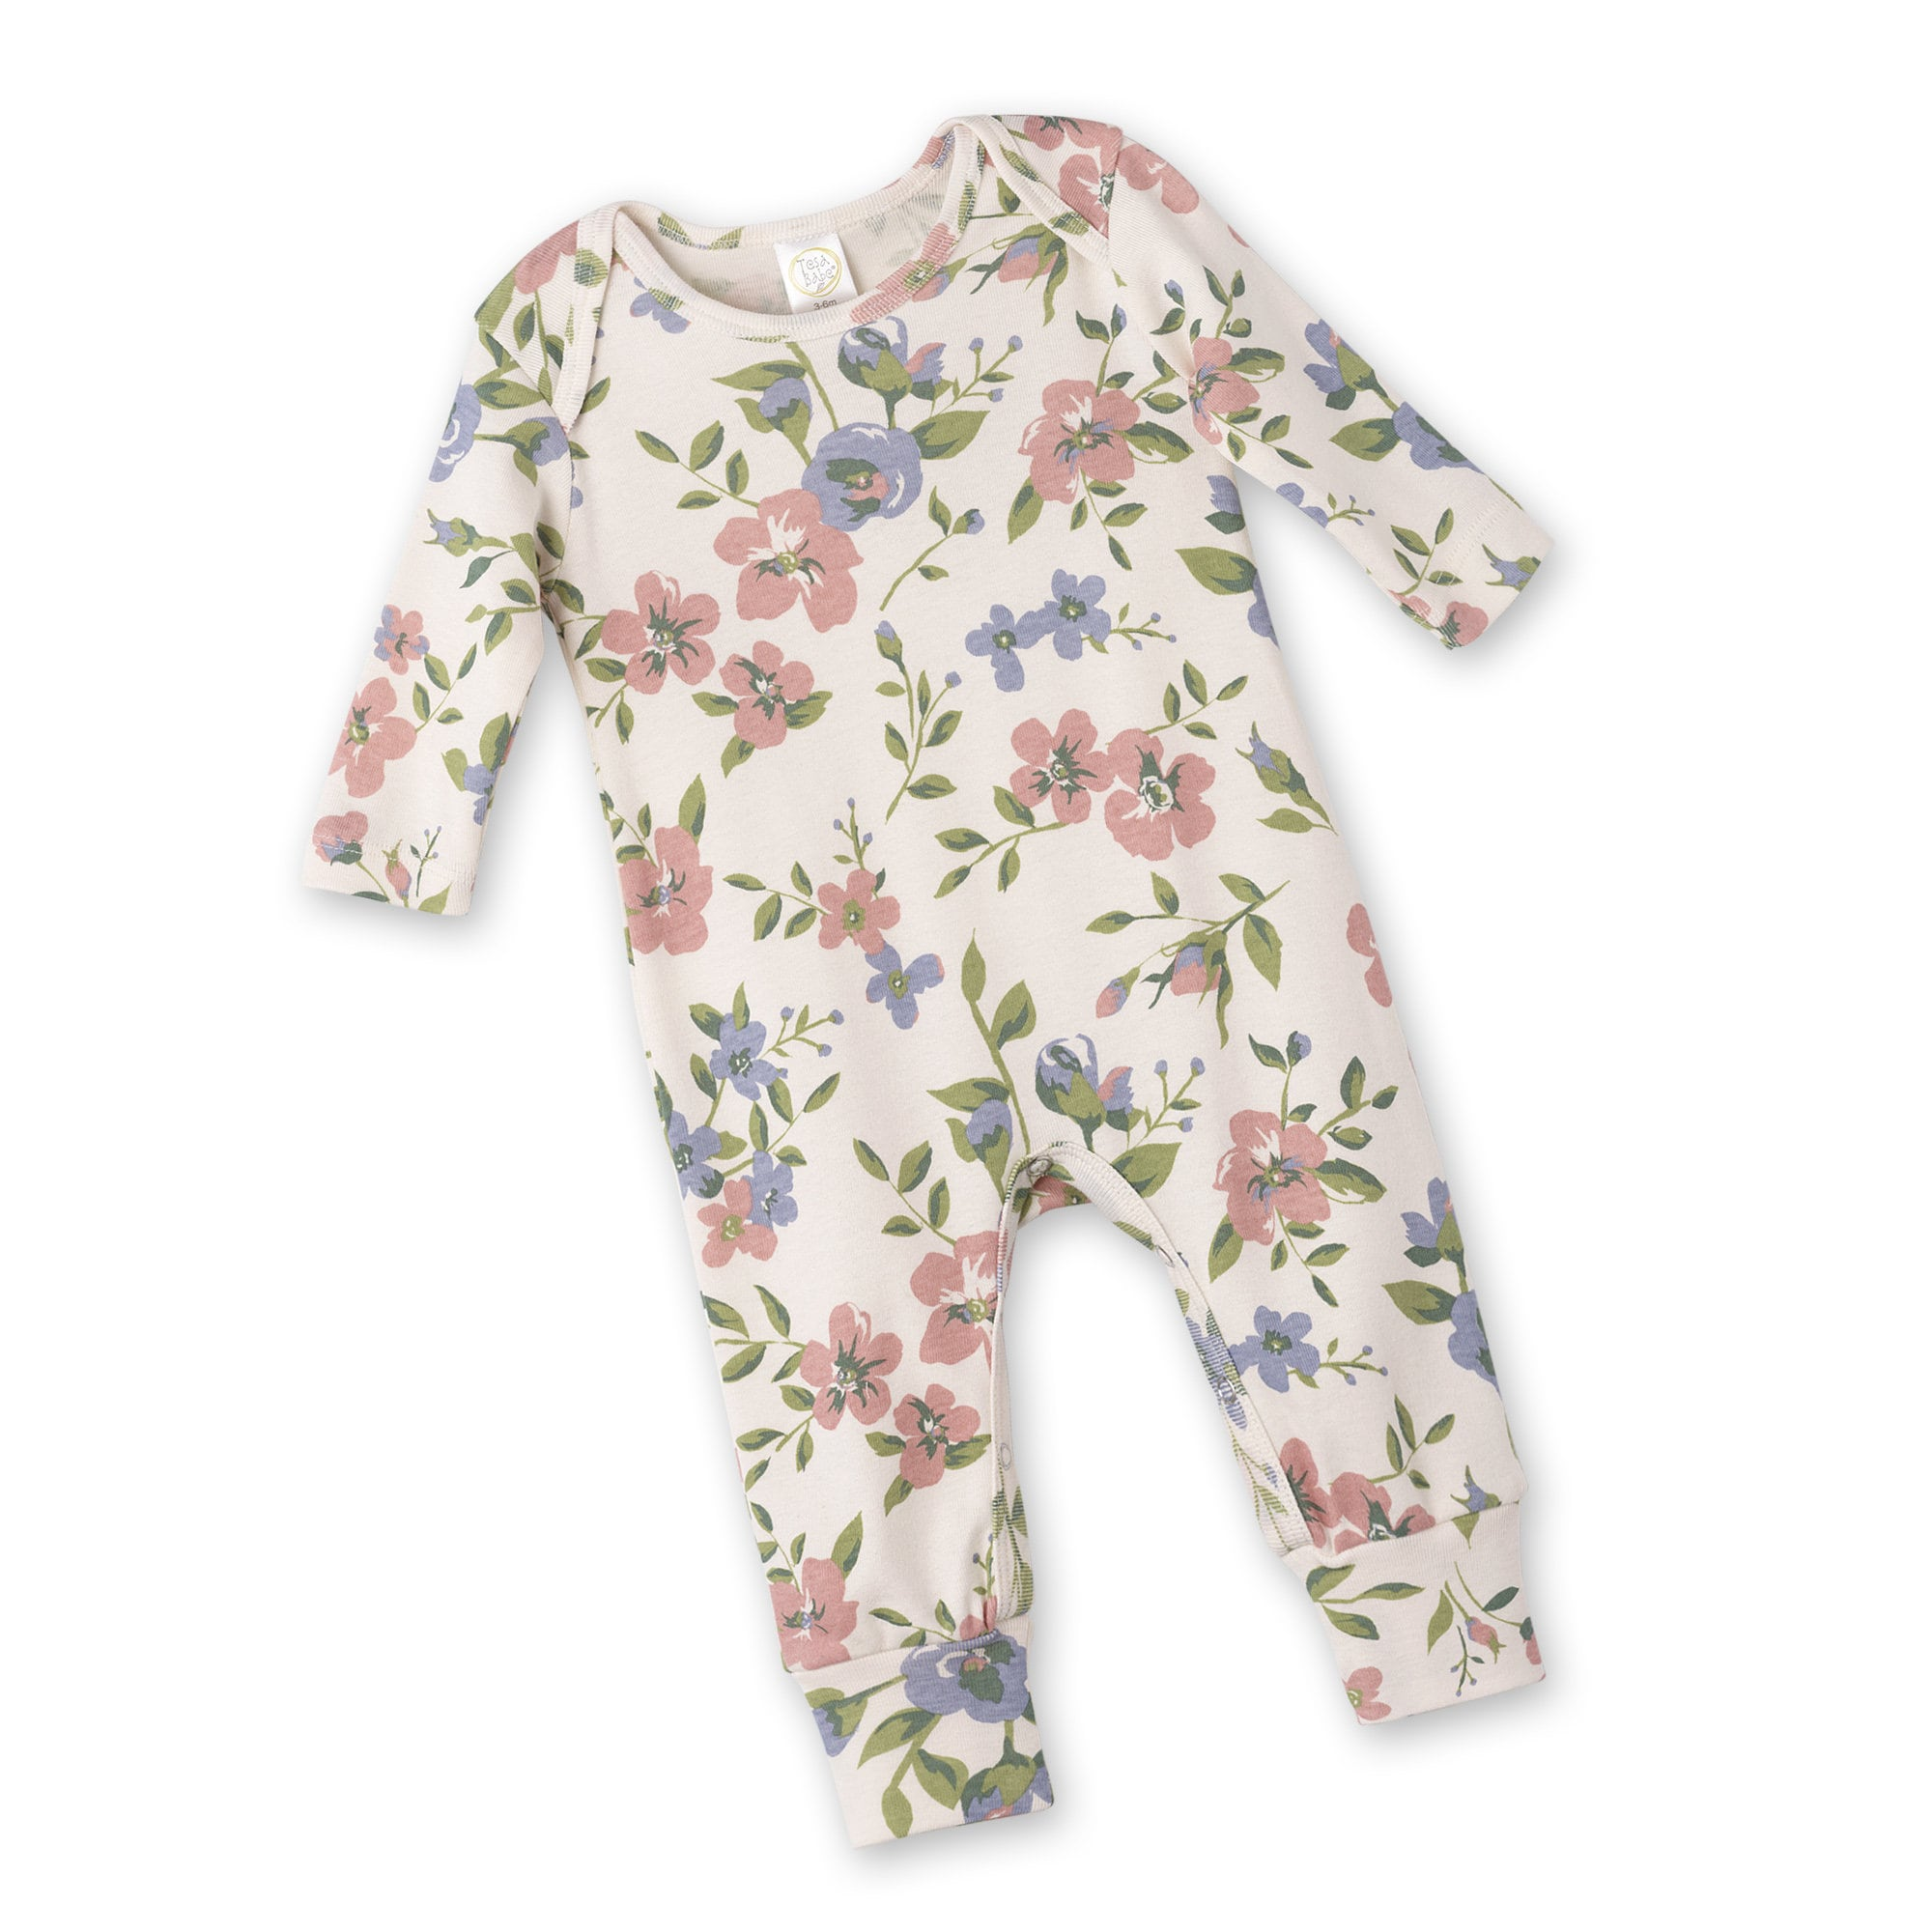 deb27b615a8 Newborn Baby Girl Coming Home Outfit